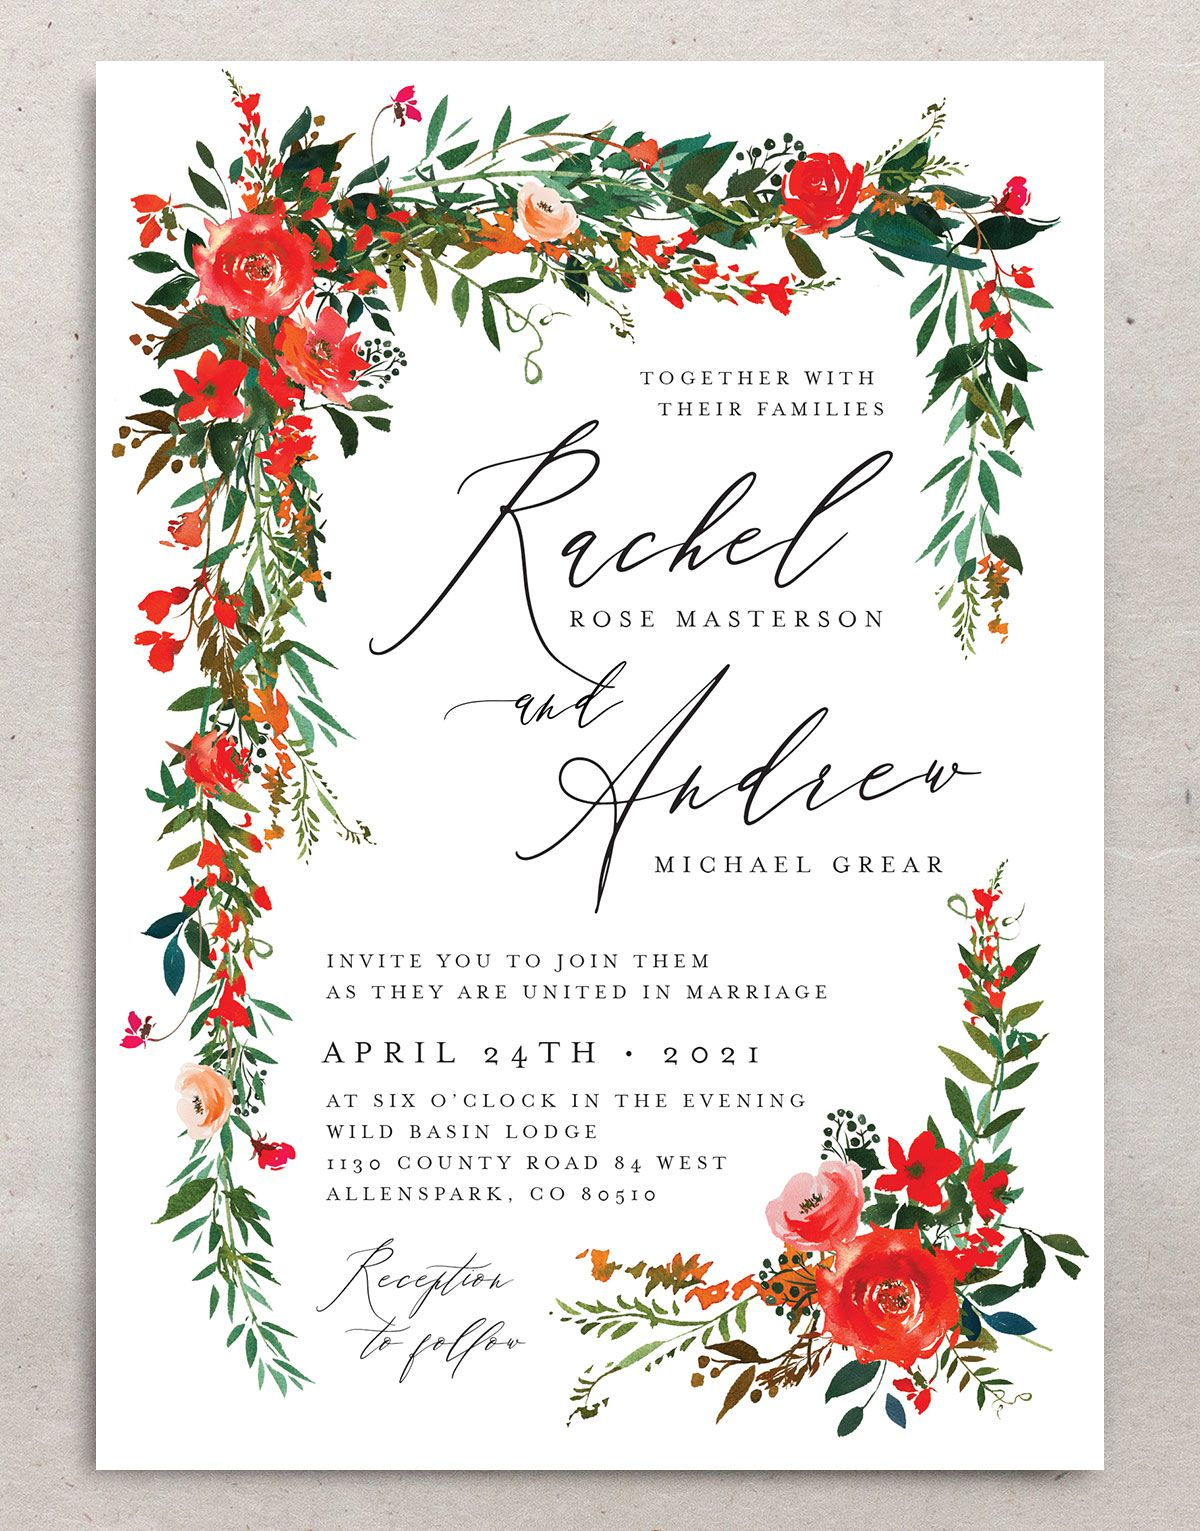 Cascading Altar wedding invites in bright red